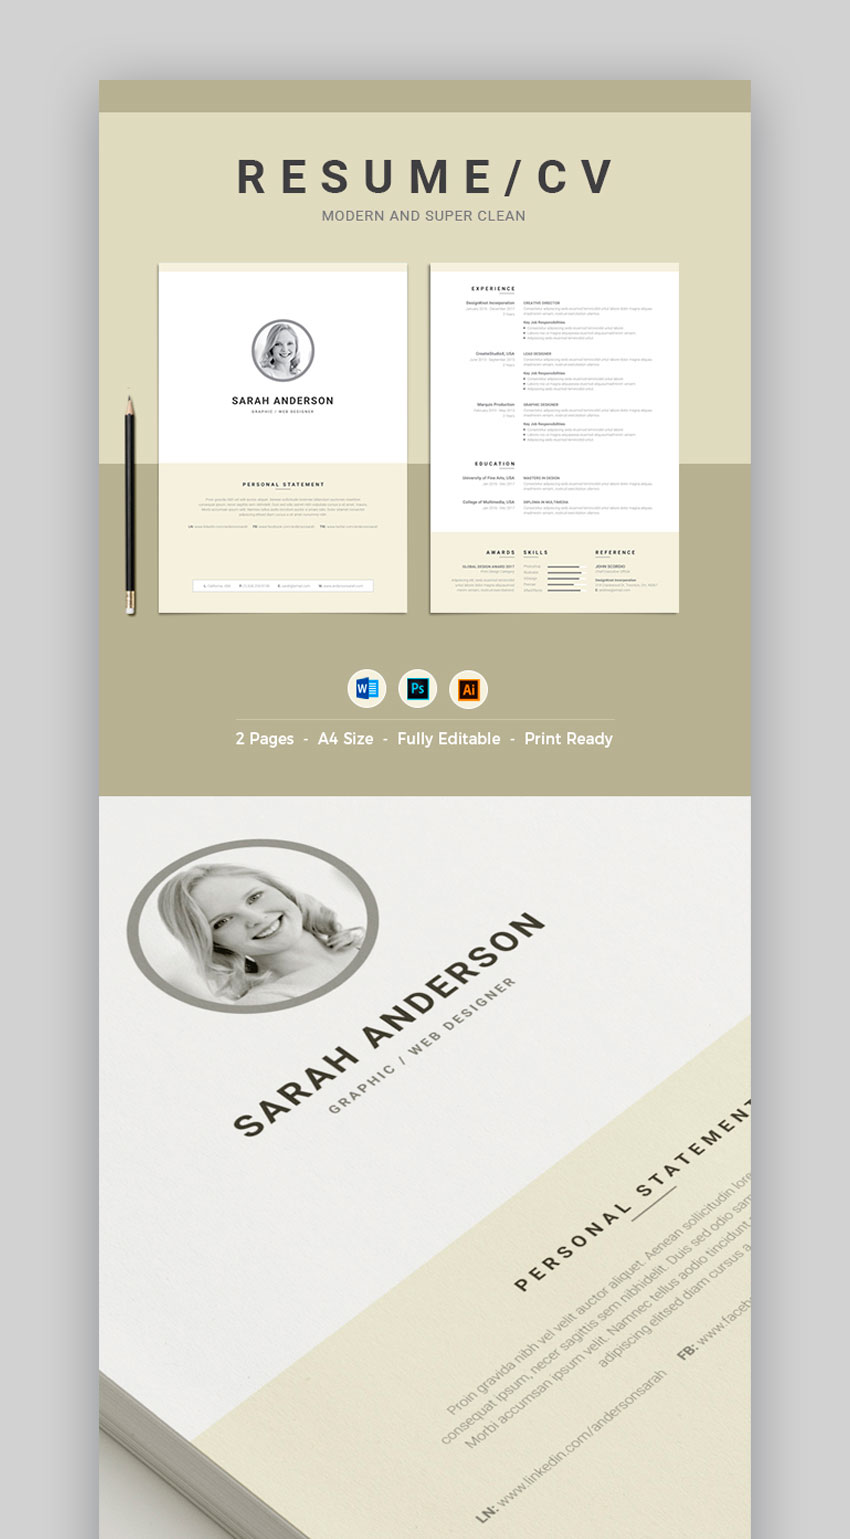 Modern and Super Clean Resume